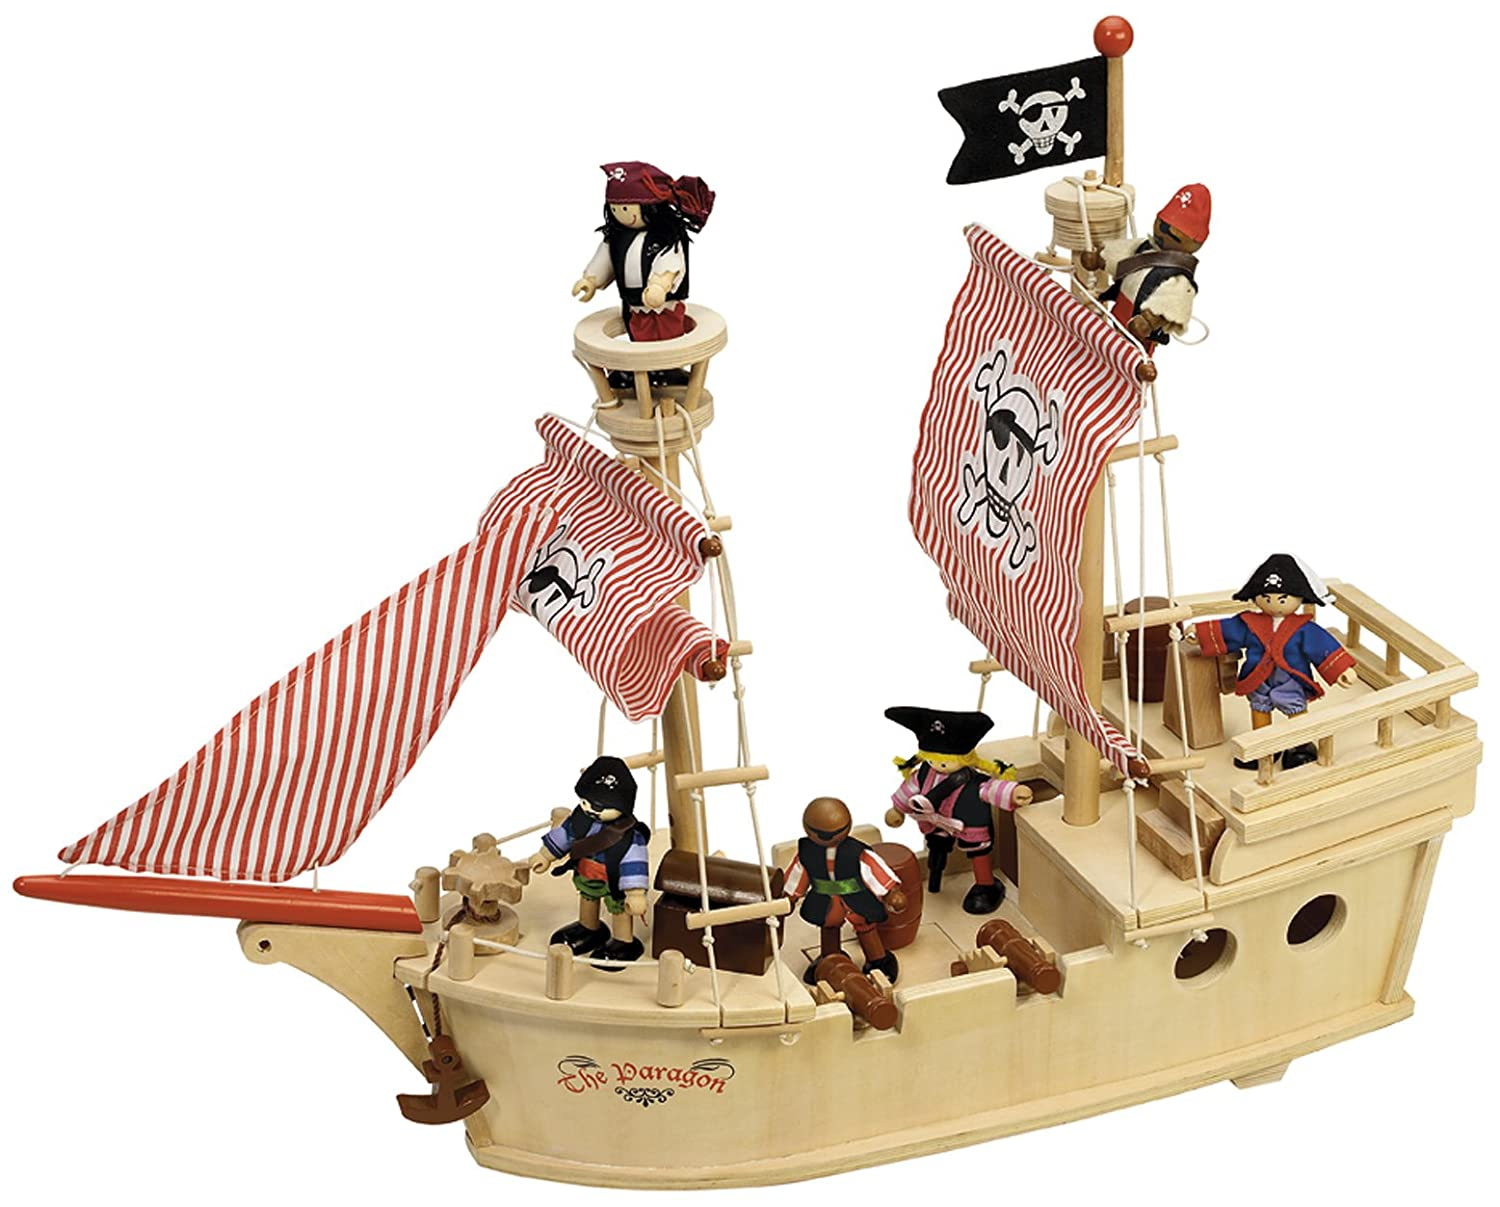 Tidlo The Paragon Pirate Ship John Crane T0094